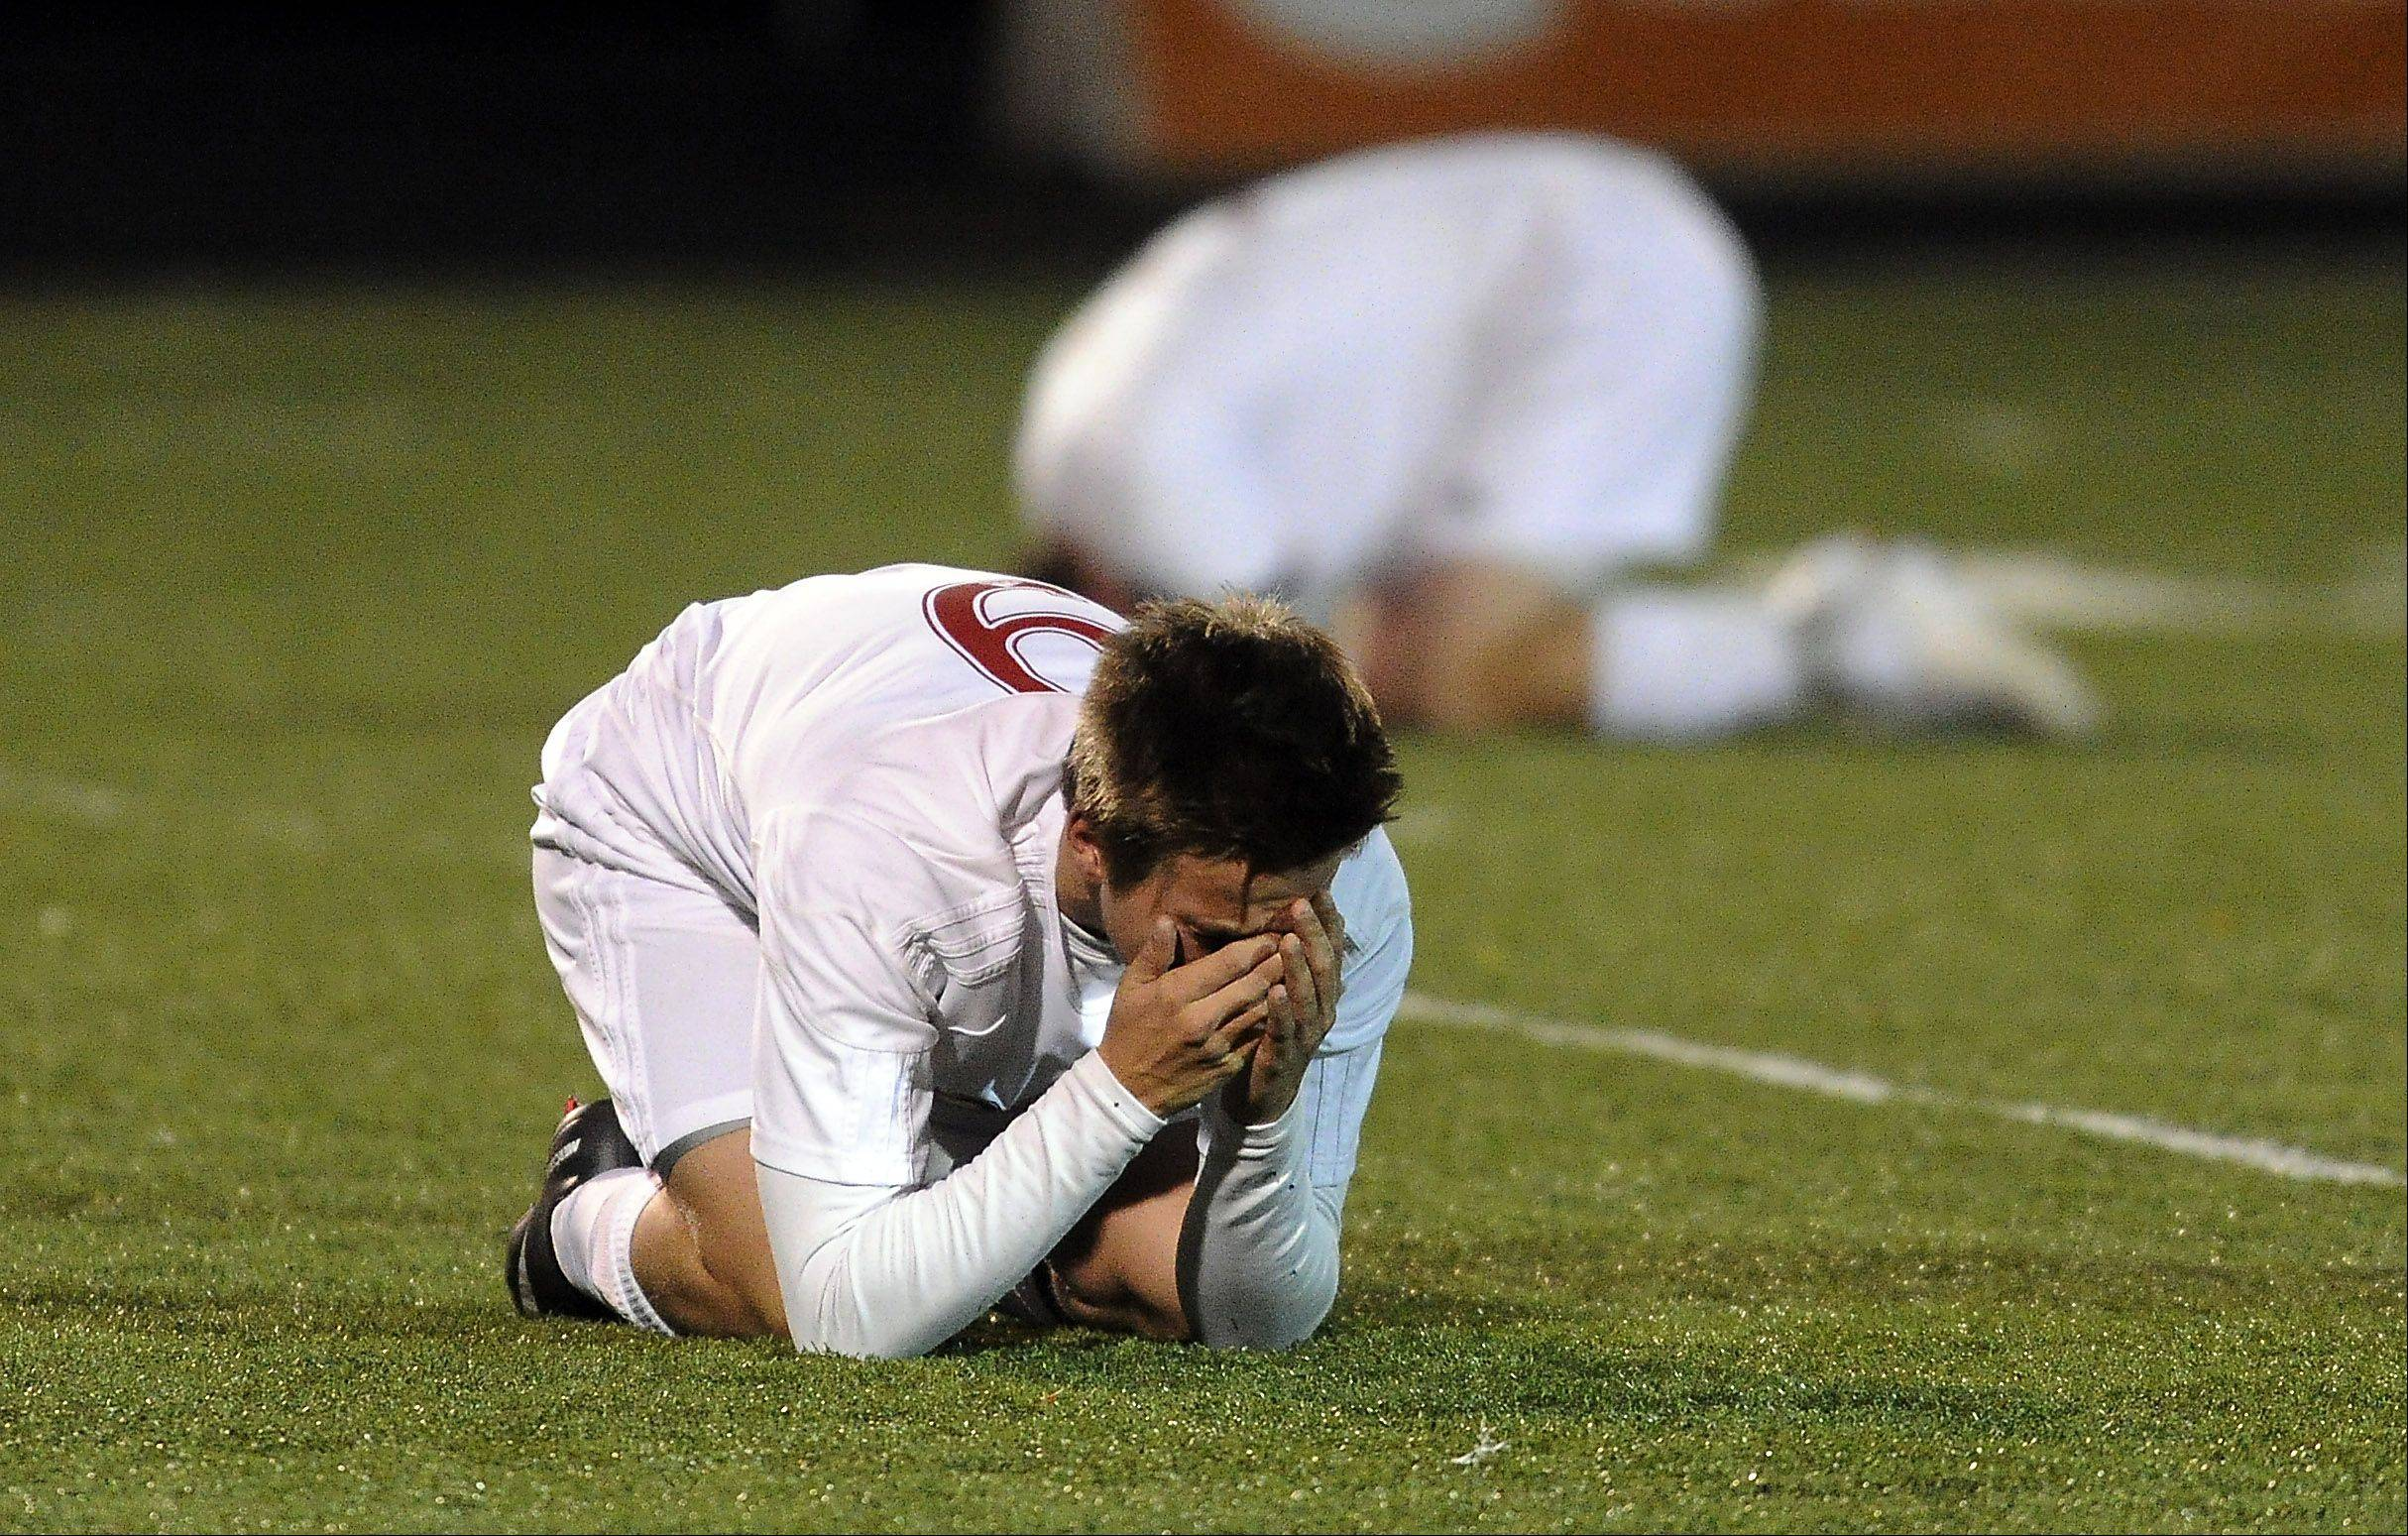 Naperville Central's Jordi Heeneman covers his emotions in the 3-1 loss to Edwardsville's in the Class 3A state semifinals at Hoffman Estates High School on Friday.